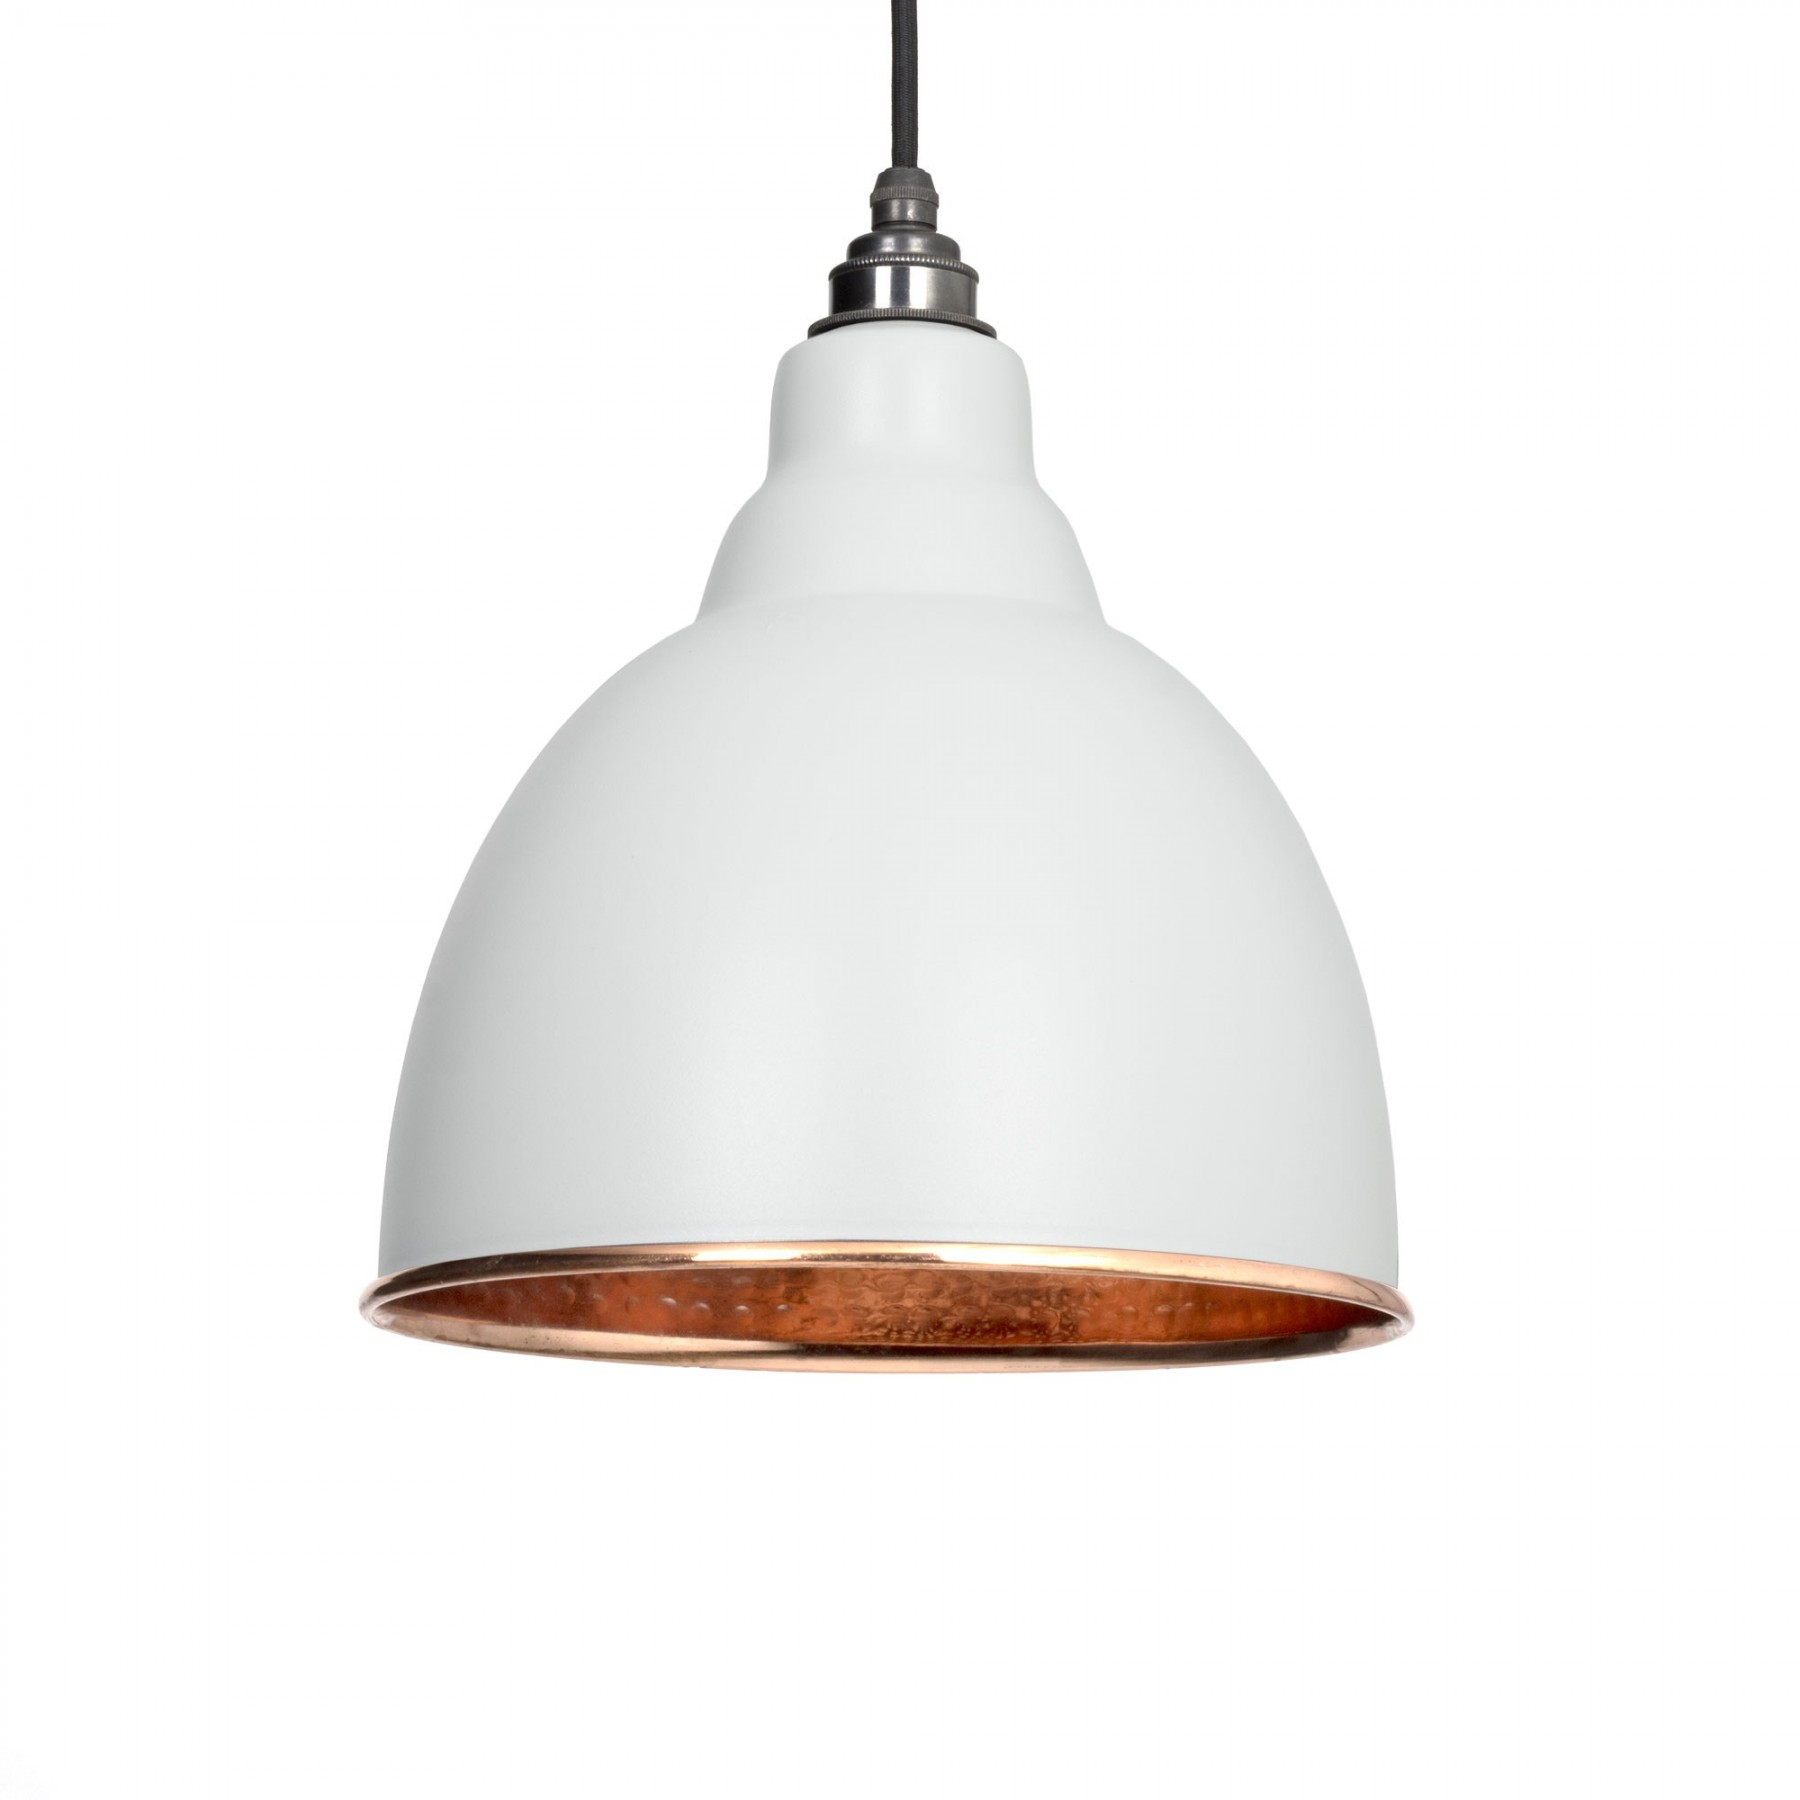 Brindley Pendants